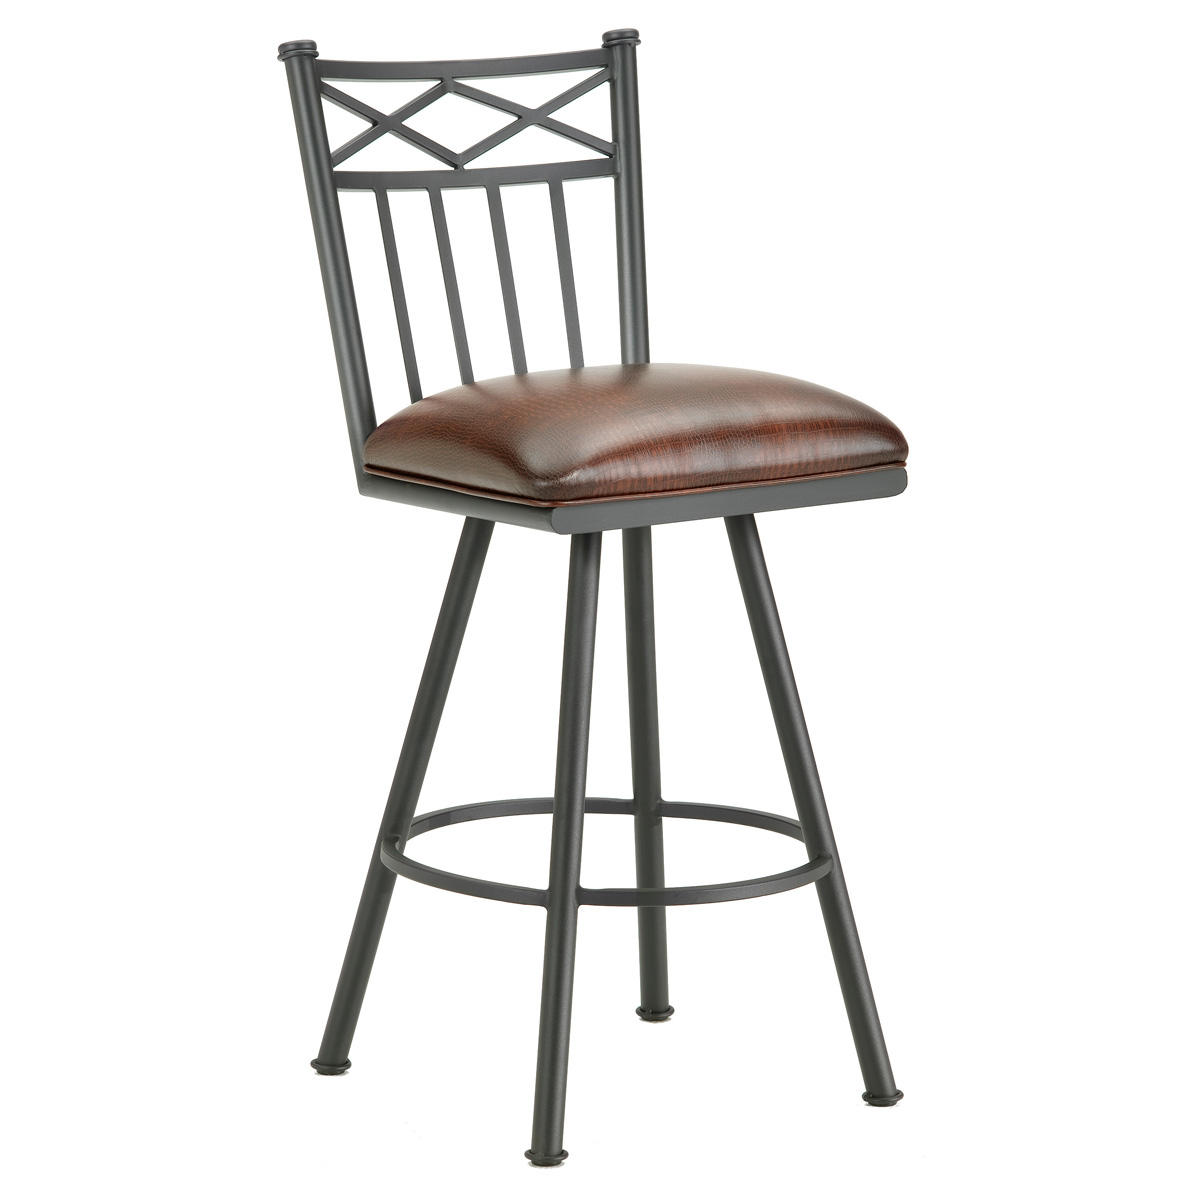 "Alexander 30"" Armless Swivel Bar Stool - X Motif, Lamp Black, Alligator Leather"